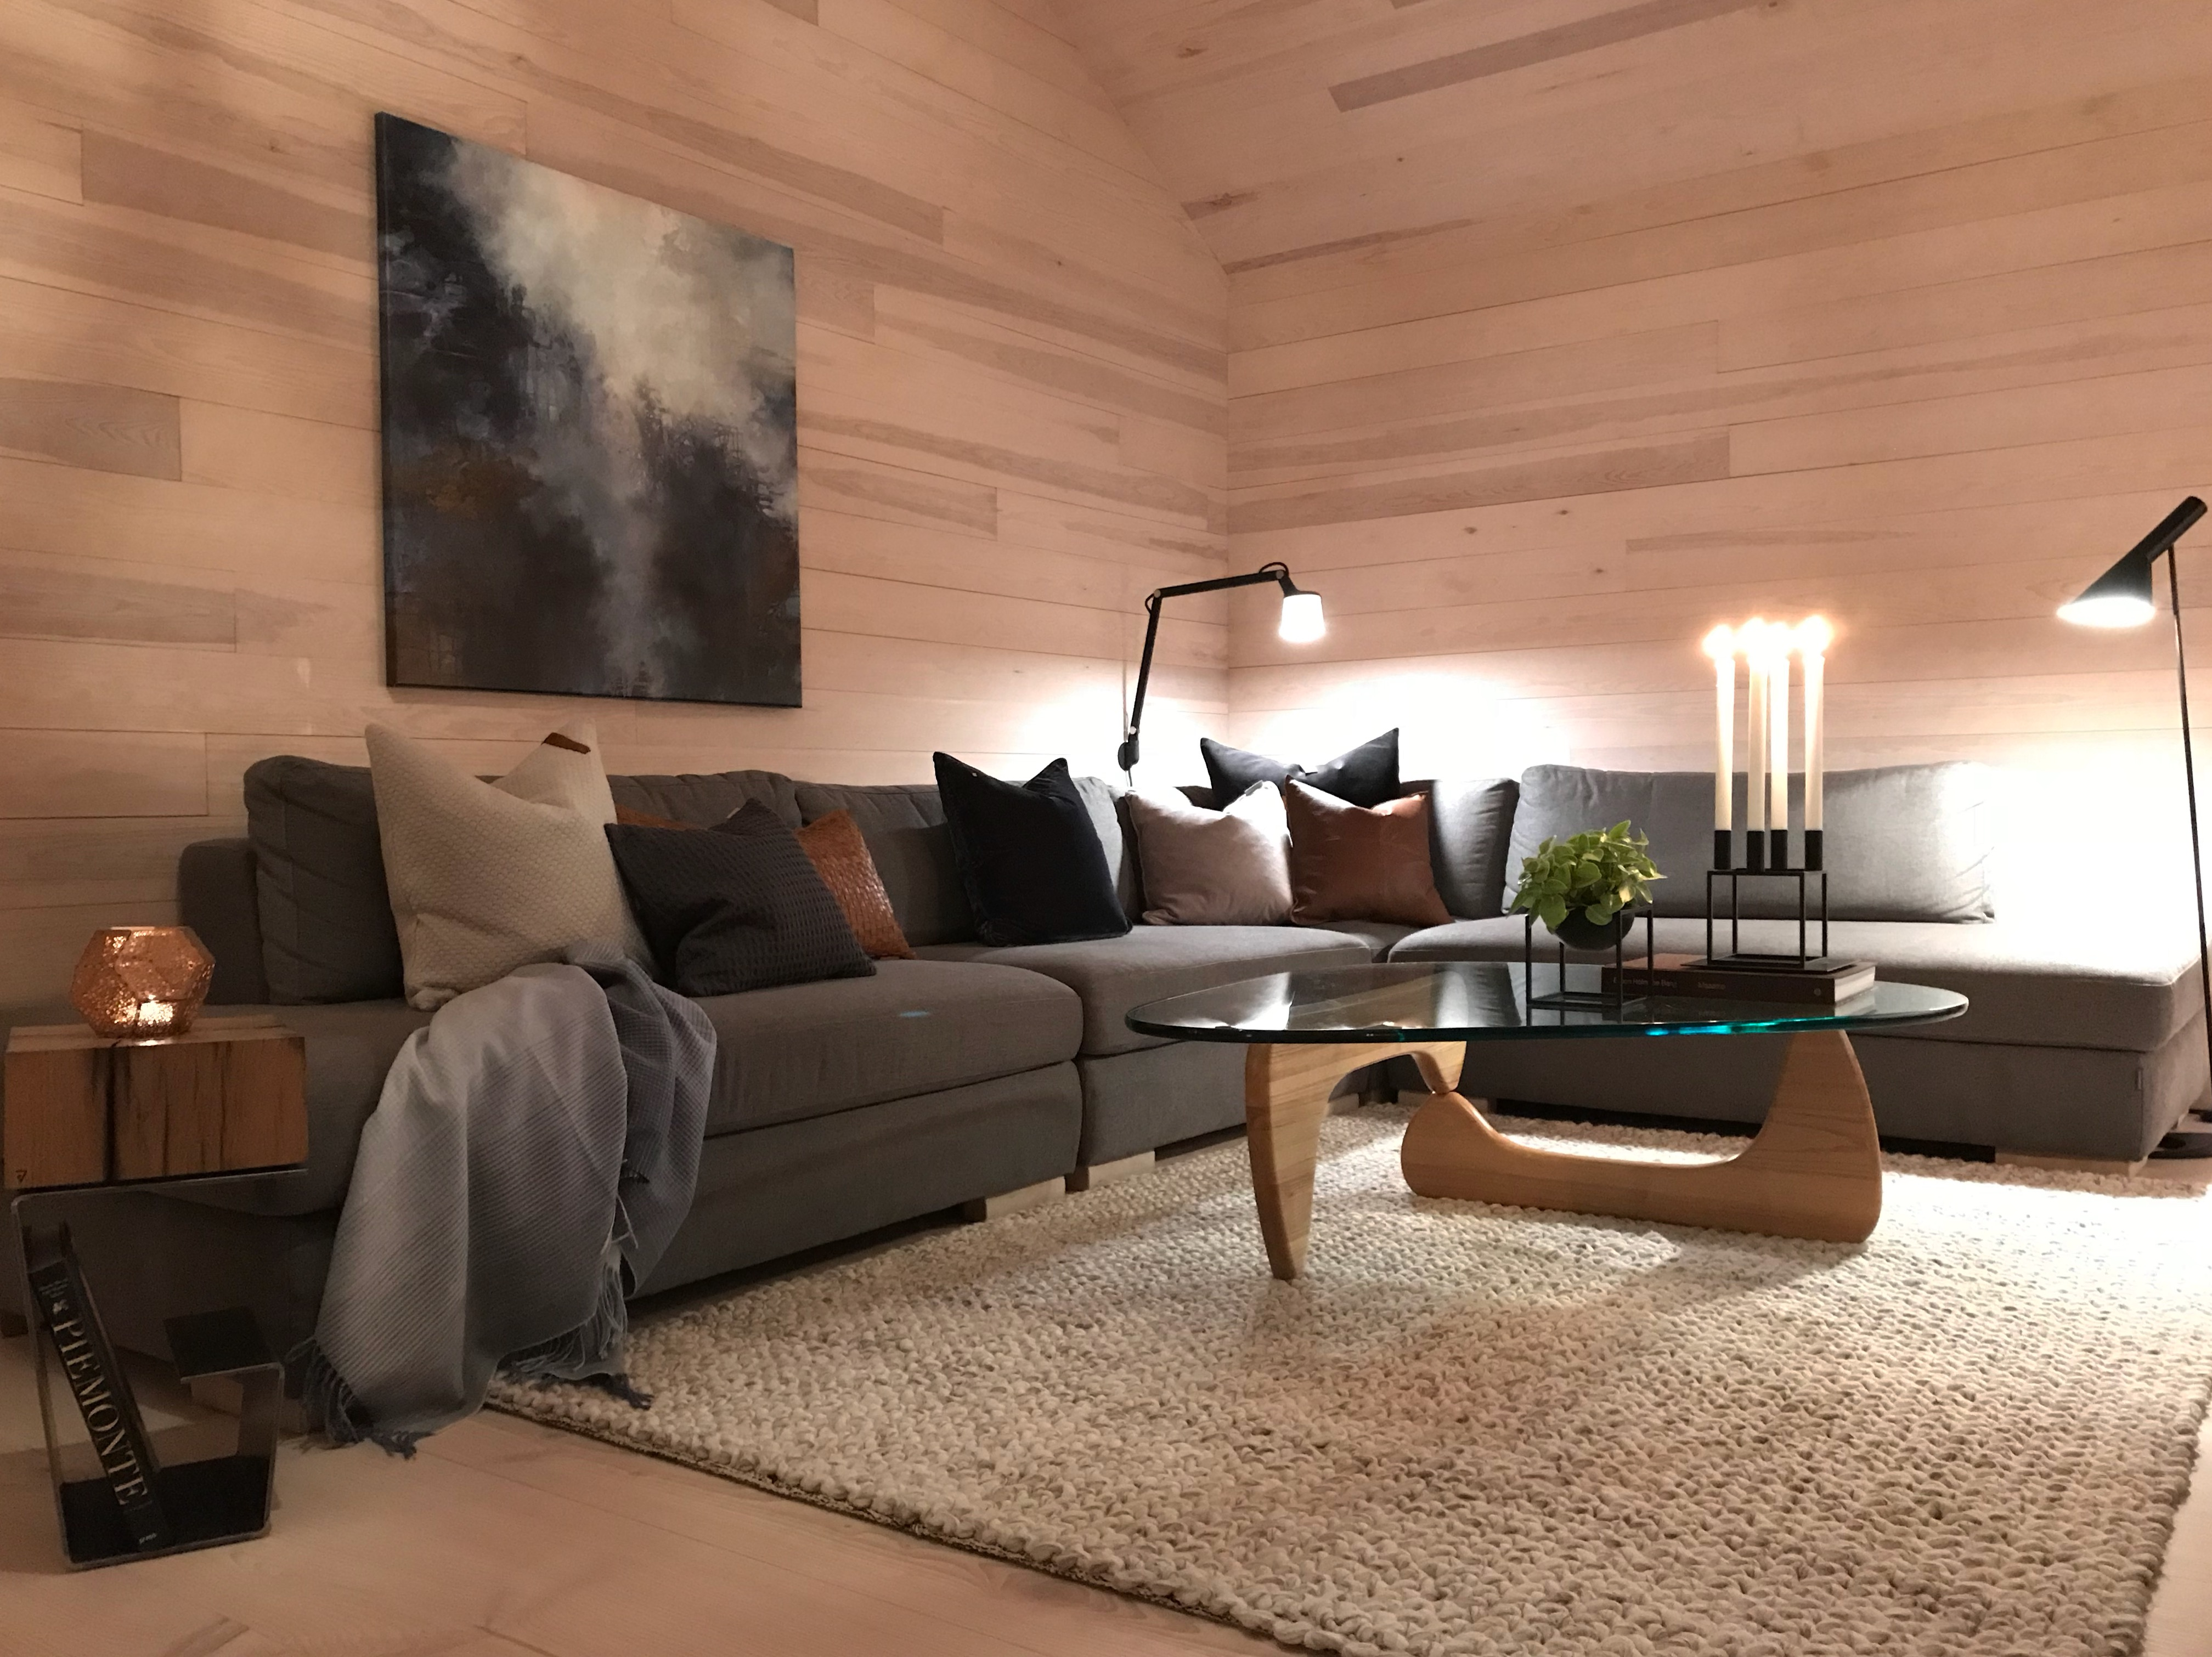 Inspirational Wooden Interior Decorated by Luxury Side Table